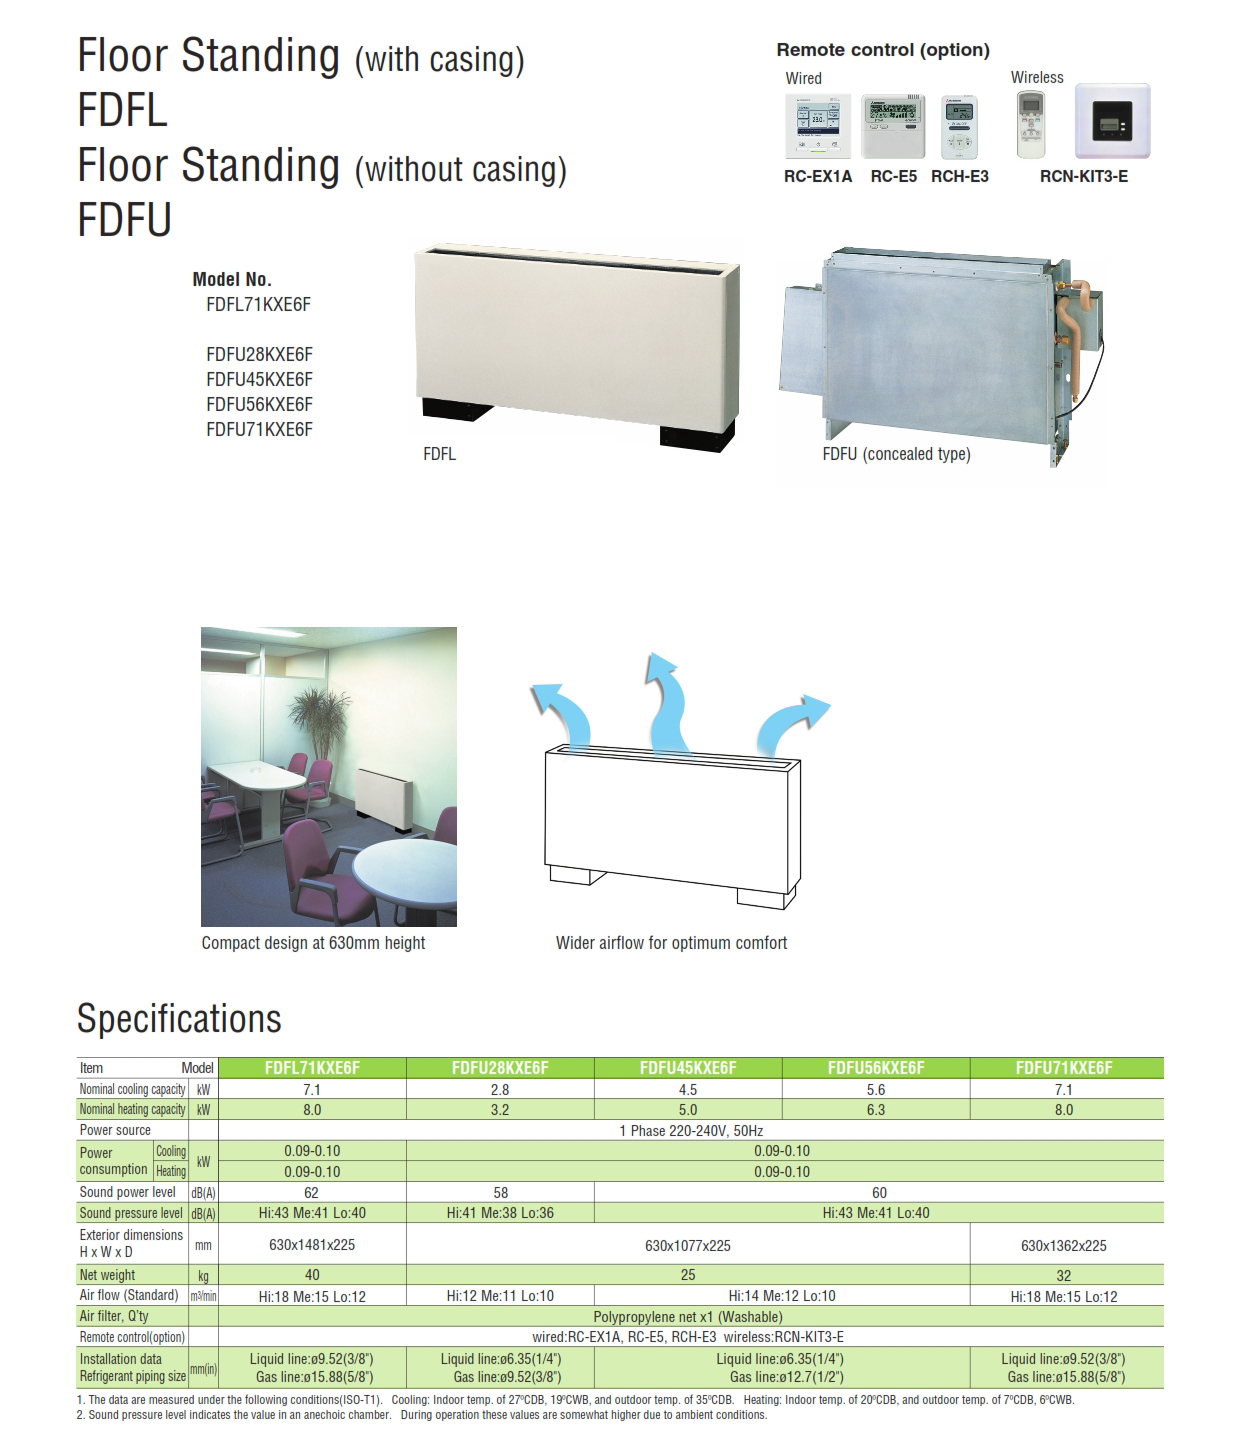 Floor Standing (with casing) FDFL Floor Standing (without casing) FDFU